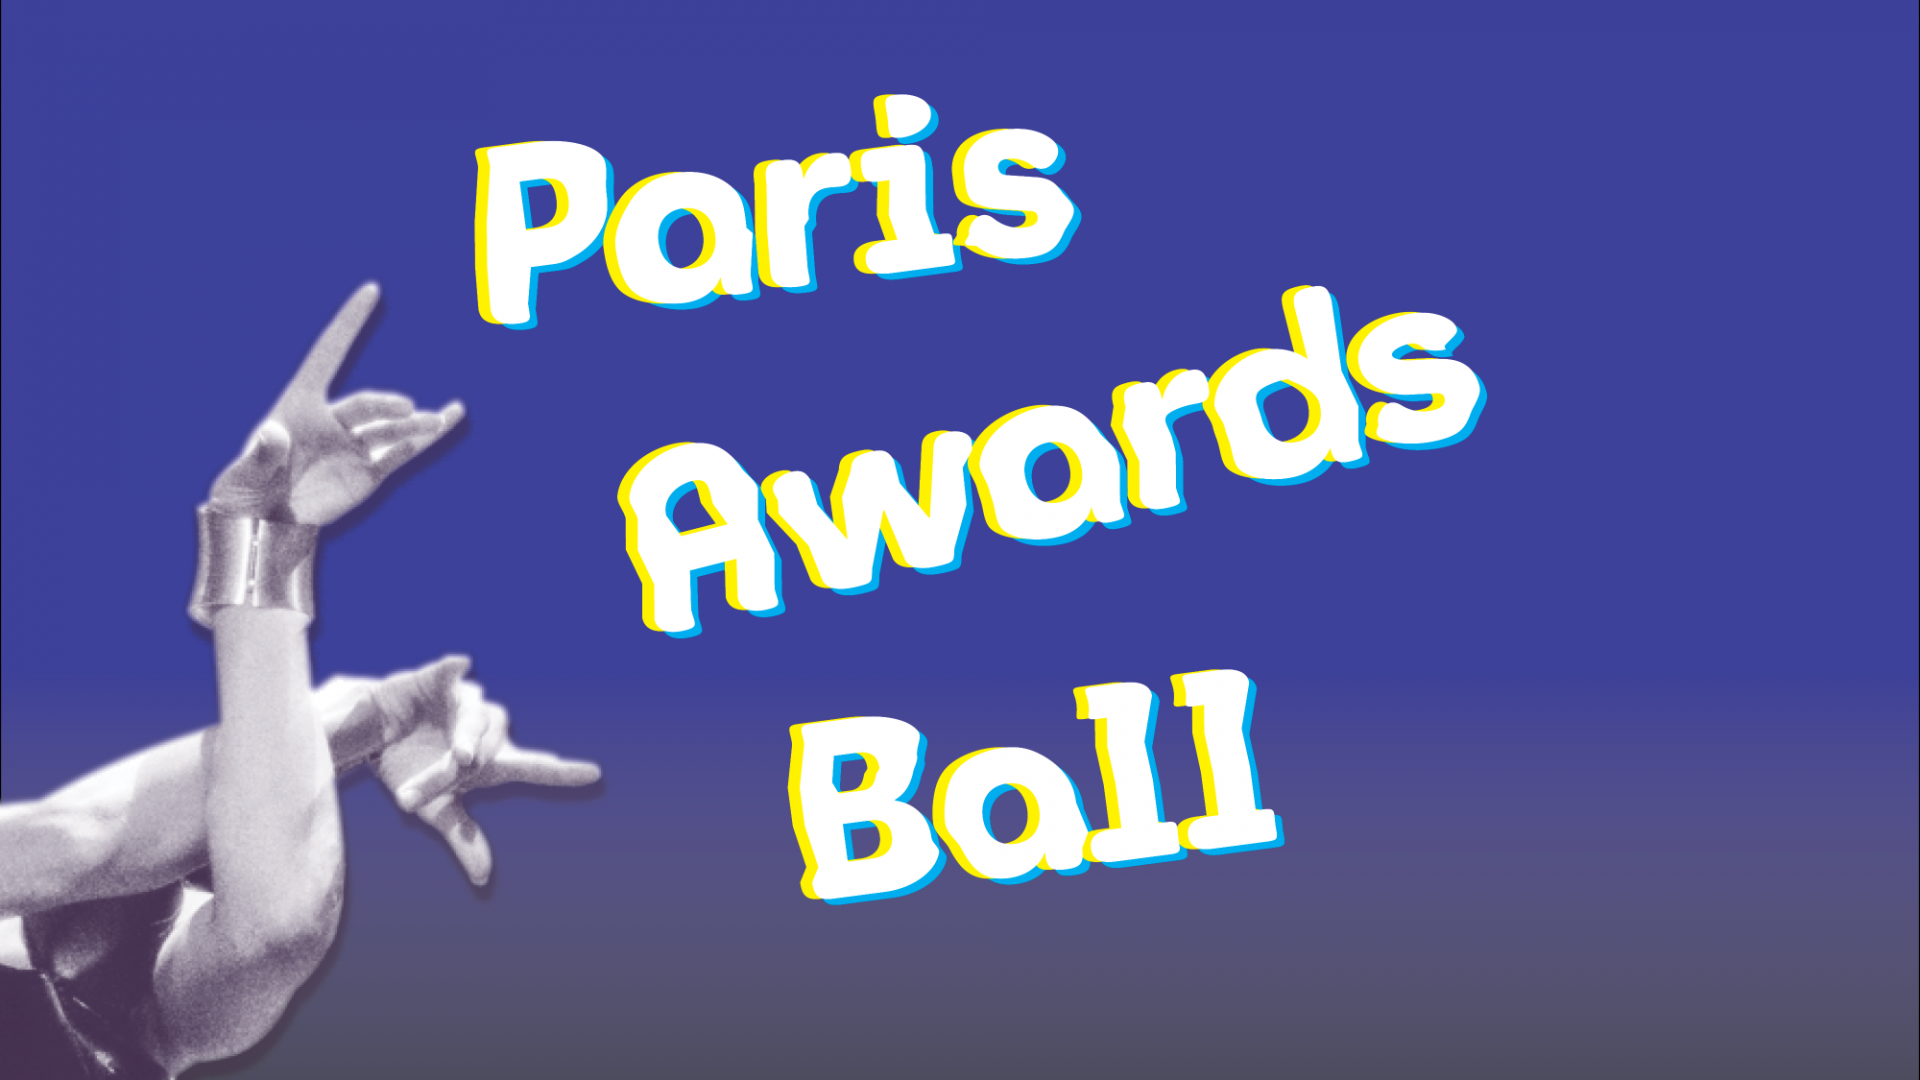 Paris Awards Ball III